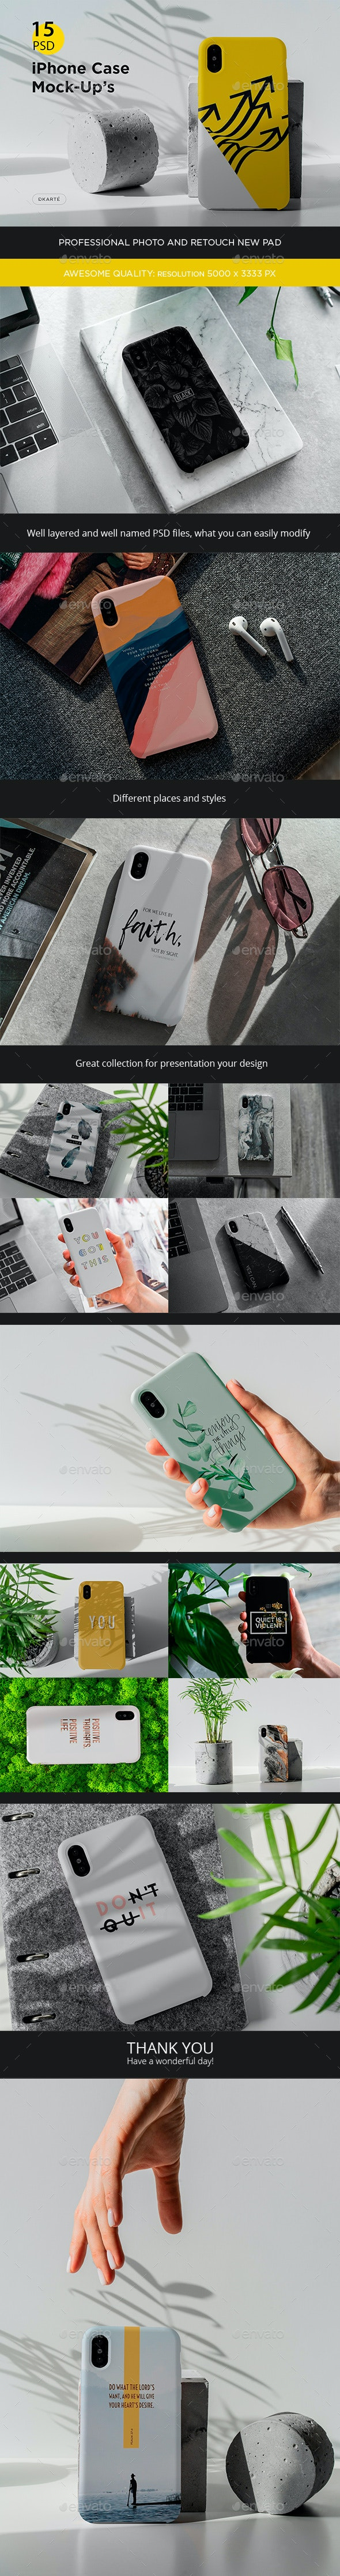 Phone X Case Mock-Up's - Print Product Mock-Ups